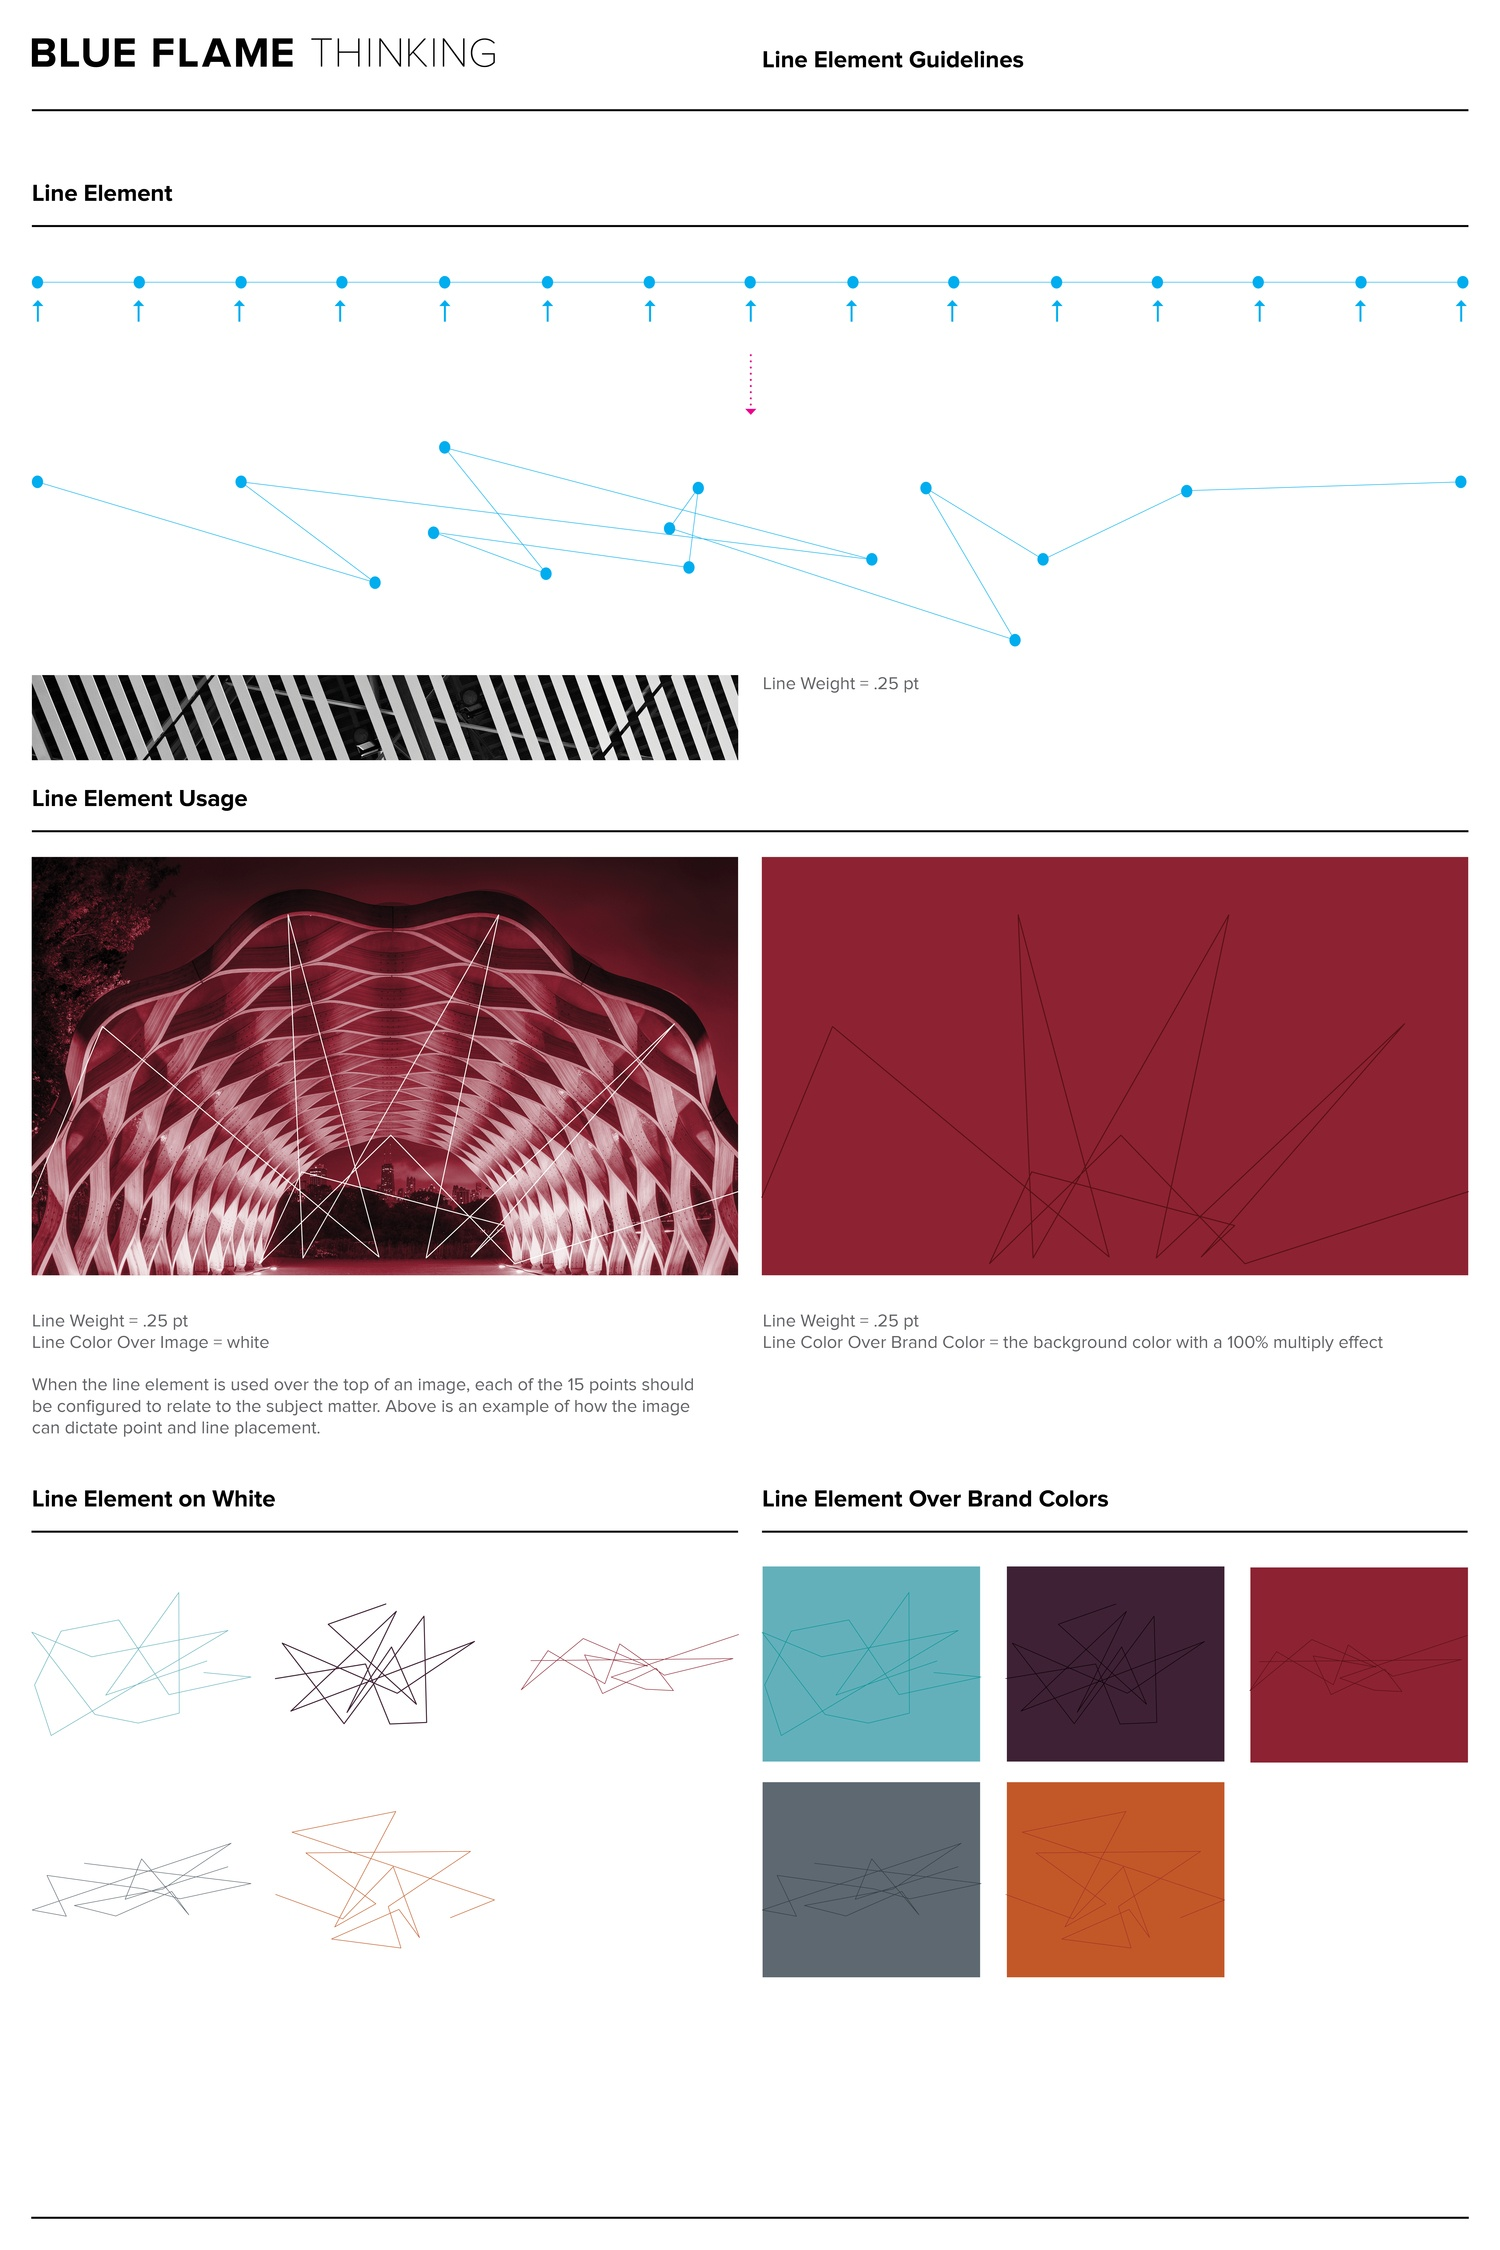 14 Stunning Examples of Brand Style Guides